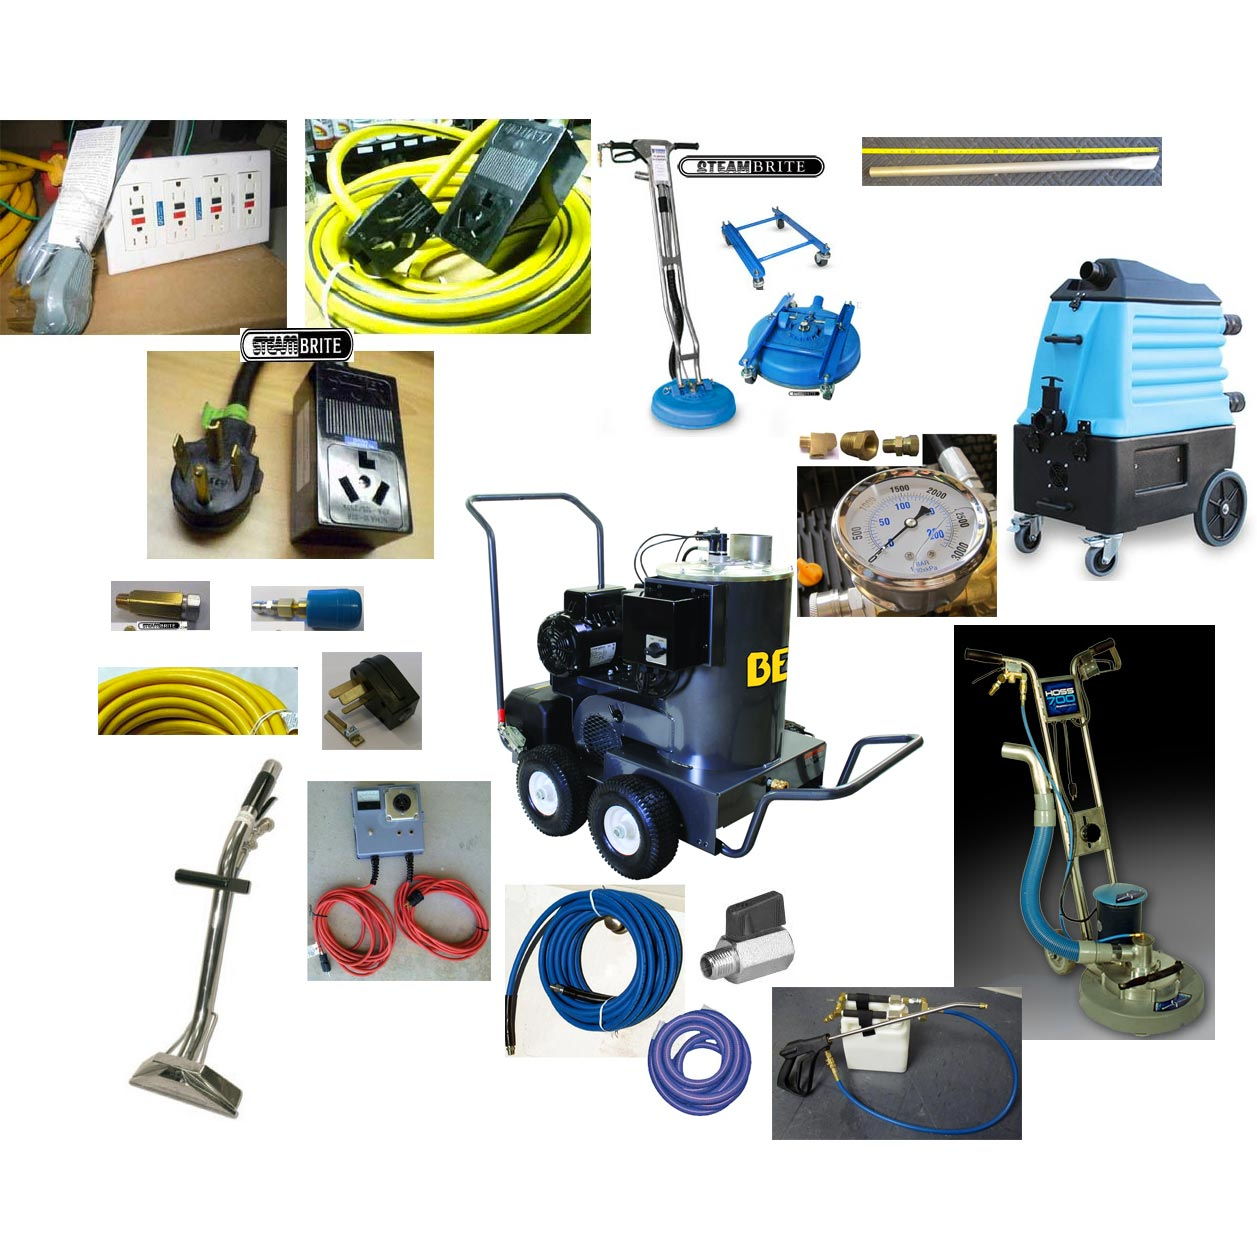 Tile Cleaning Pressure Washing Carpet Cleaning Synergistic HOT Starter Package Includes Mytee 7000LX, Hoss700  20150899